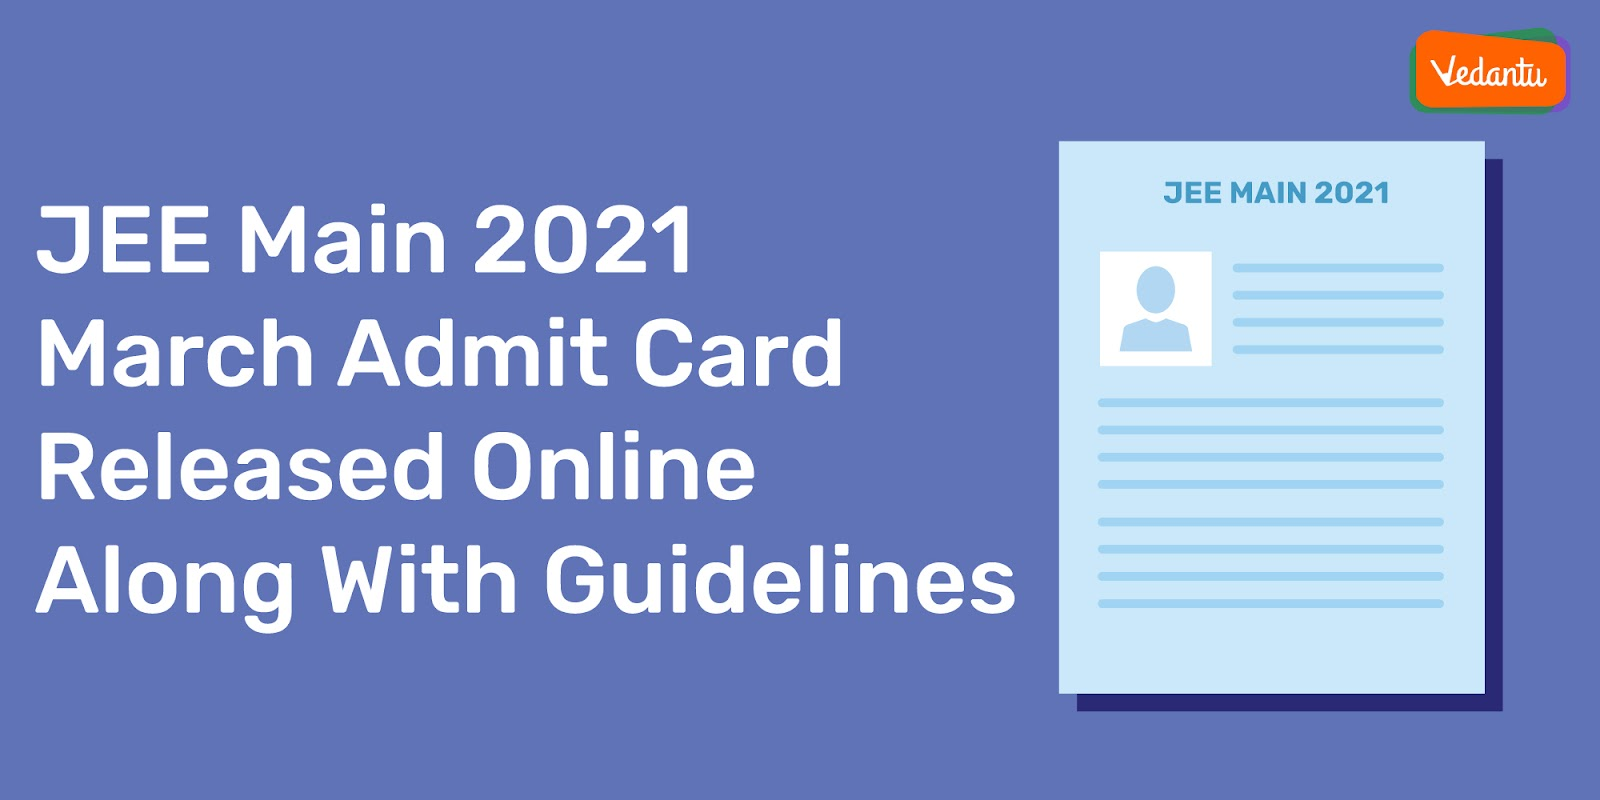 JEE Main 2021 March Admit Card Released Online Along With Guidelines